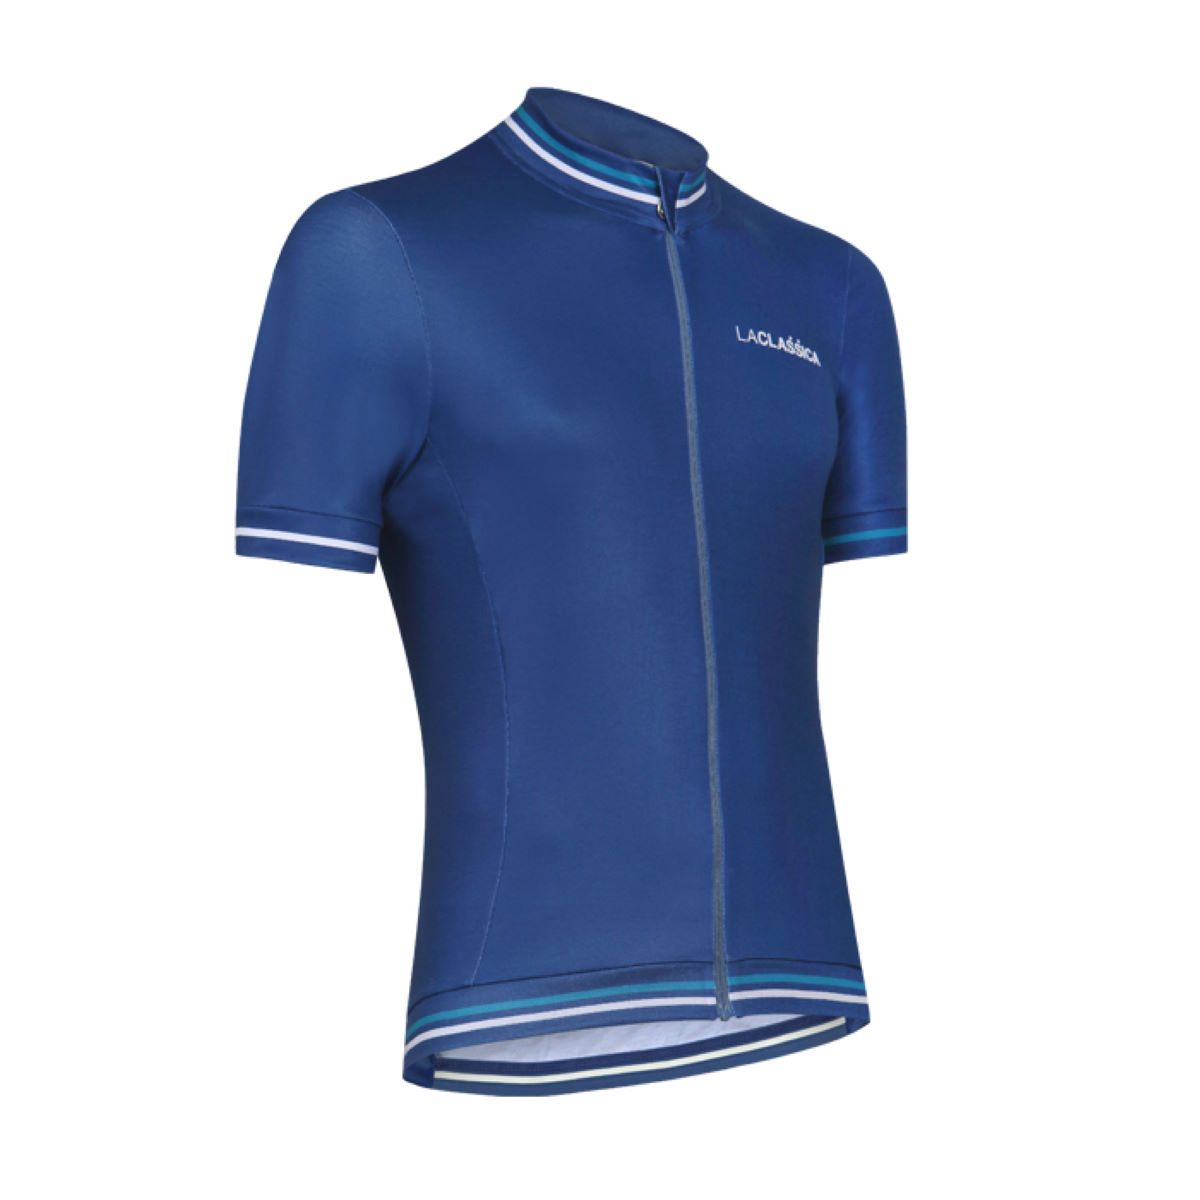 Maillot LaClassica Vintage - S Blue Moon/Guatemala